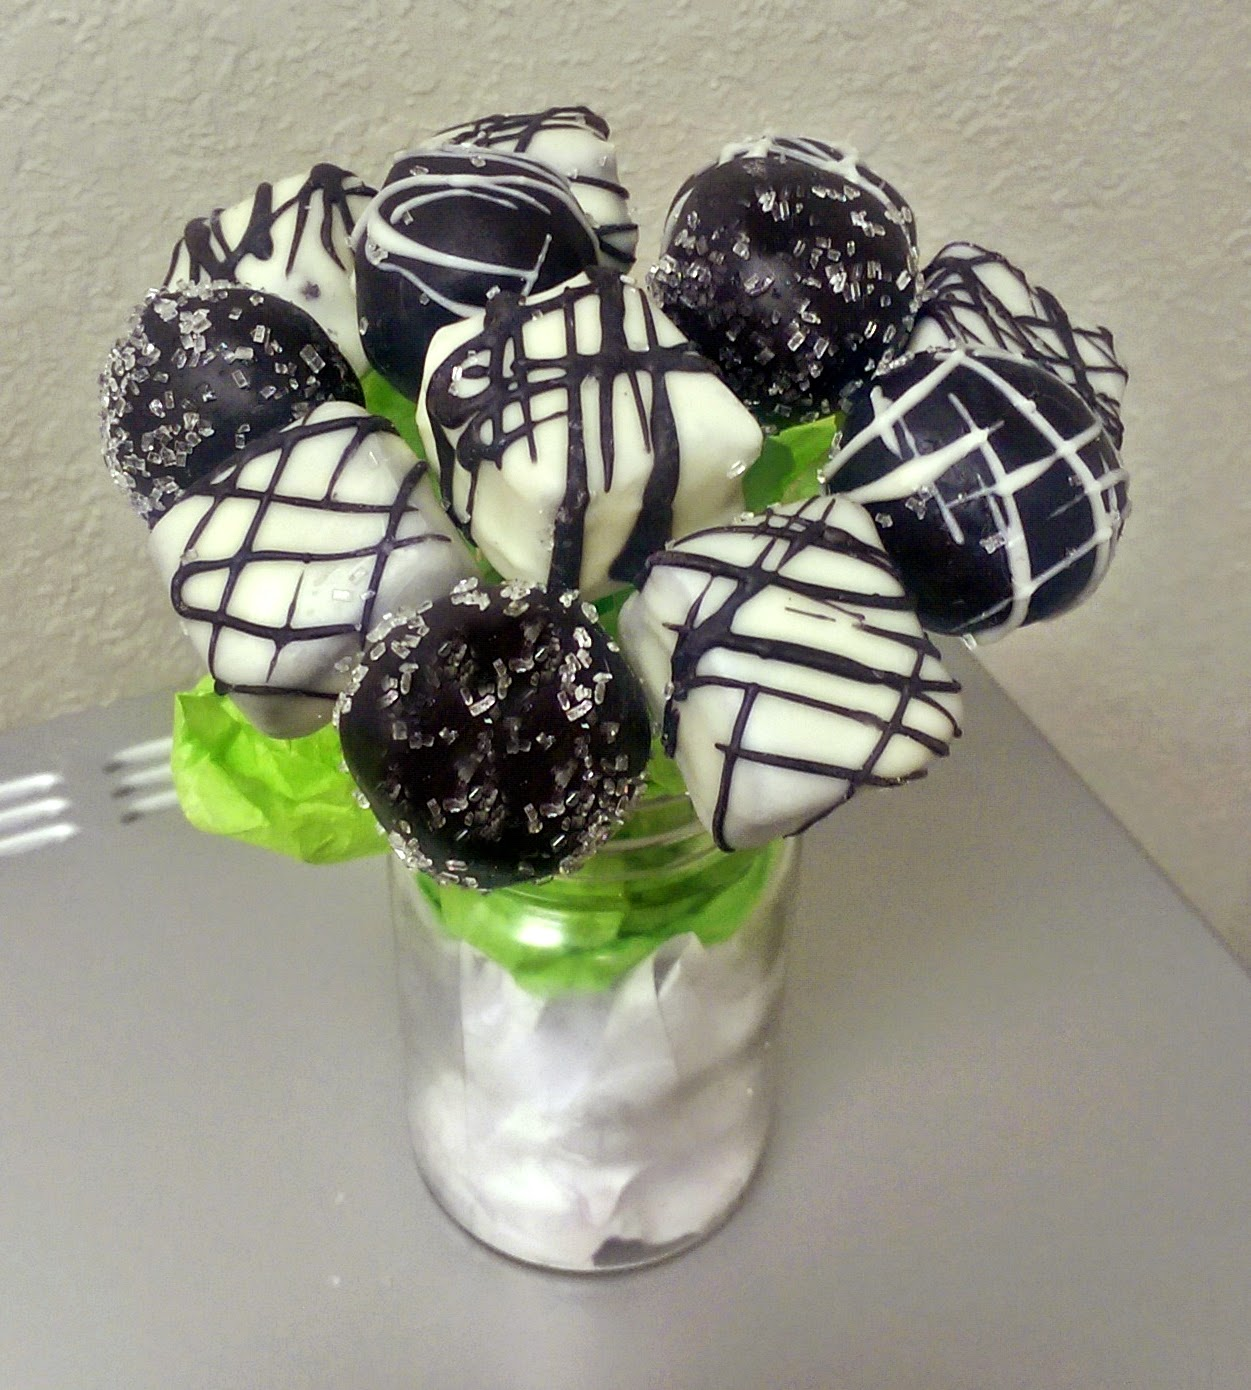 Black and White, Chocolate Drizzled Cake Ball Pops